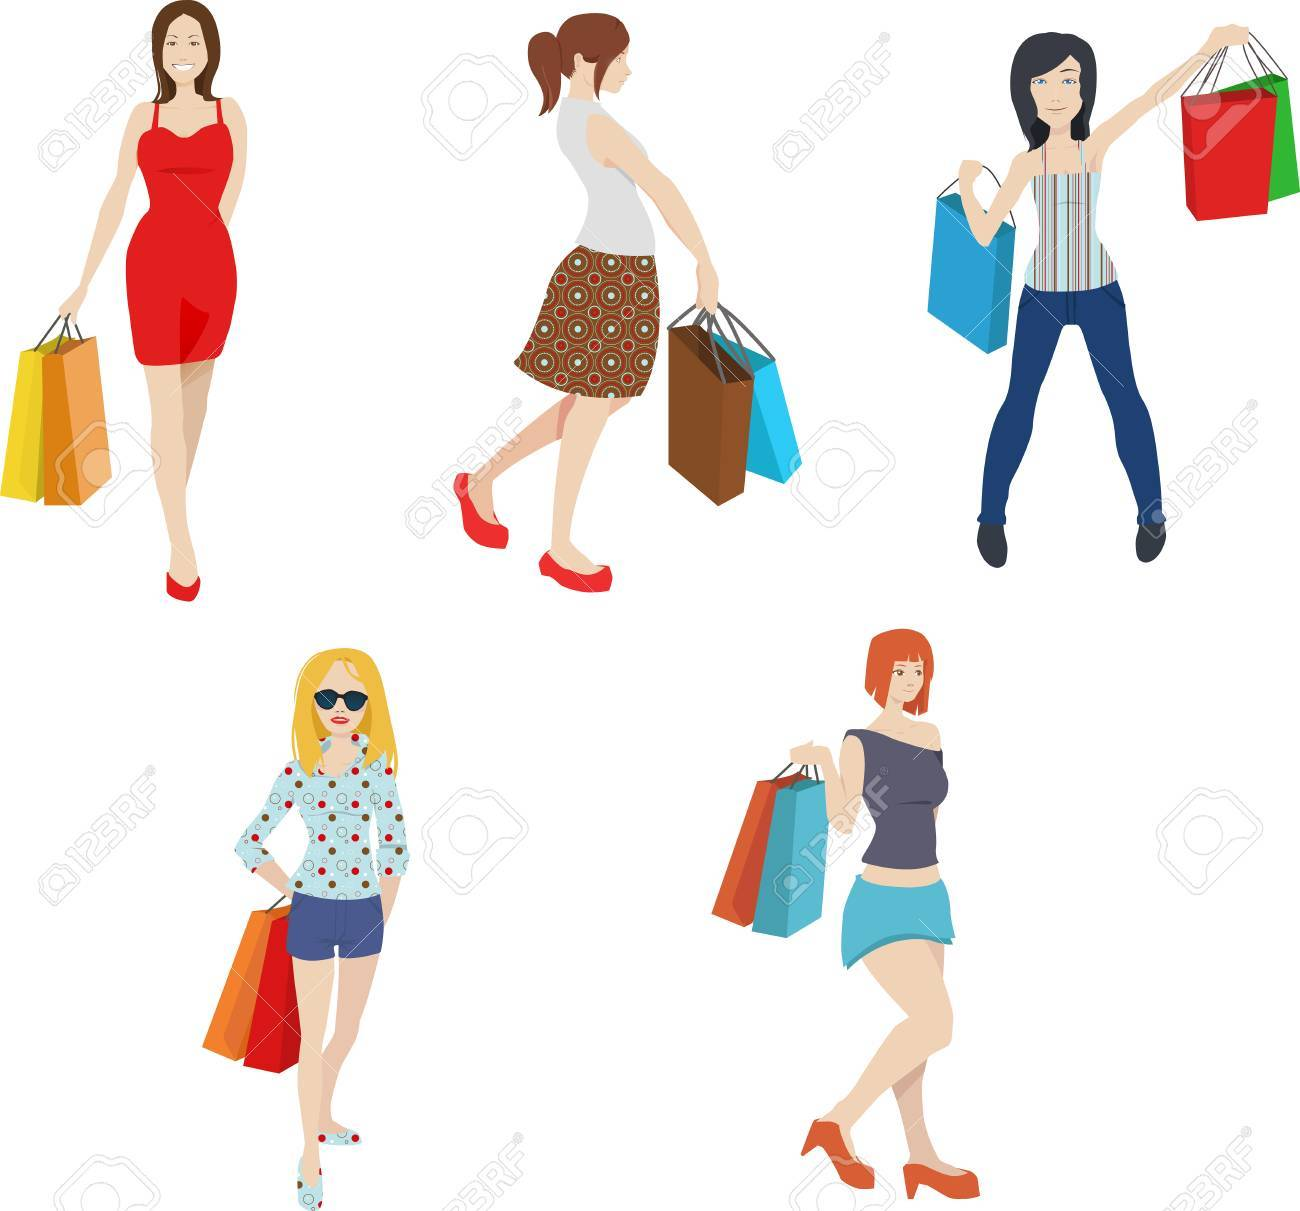 shopping women clip art fashionable trendy girl clipart royalty rh 123rf com african american woman shopping clipart black woman shopping clipart